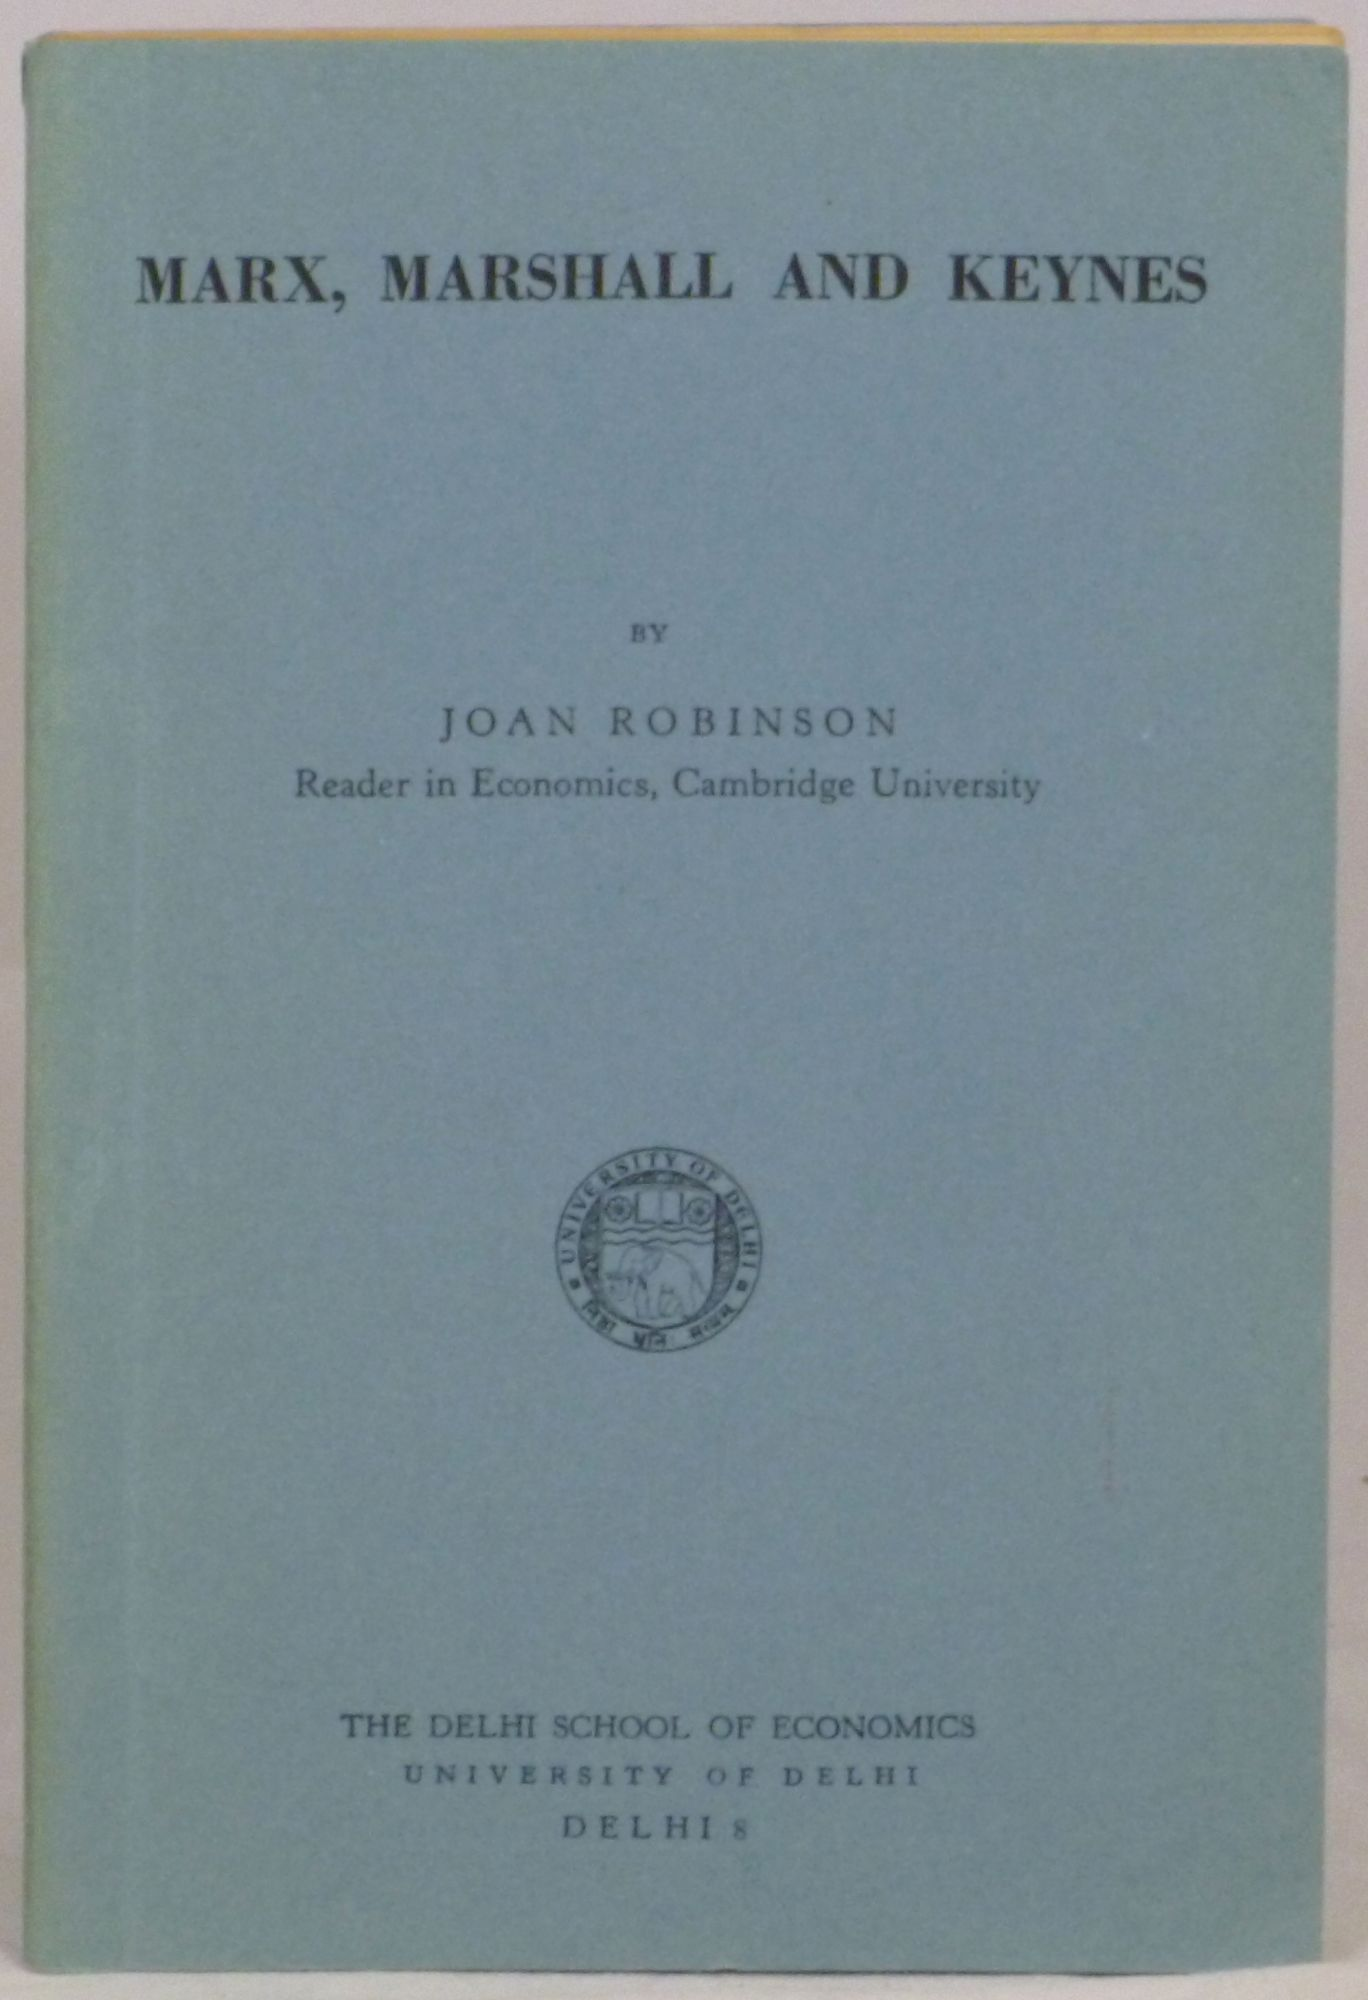 joan robinson an essay on marxian economics An essay on marxian economics [joan robinson] on amazoncom free shipping on qualifying offers.